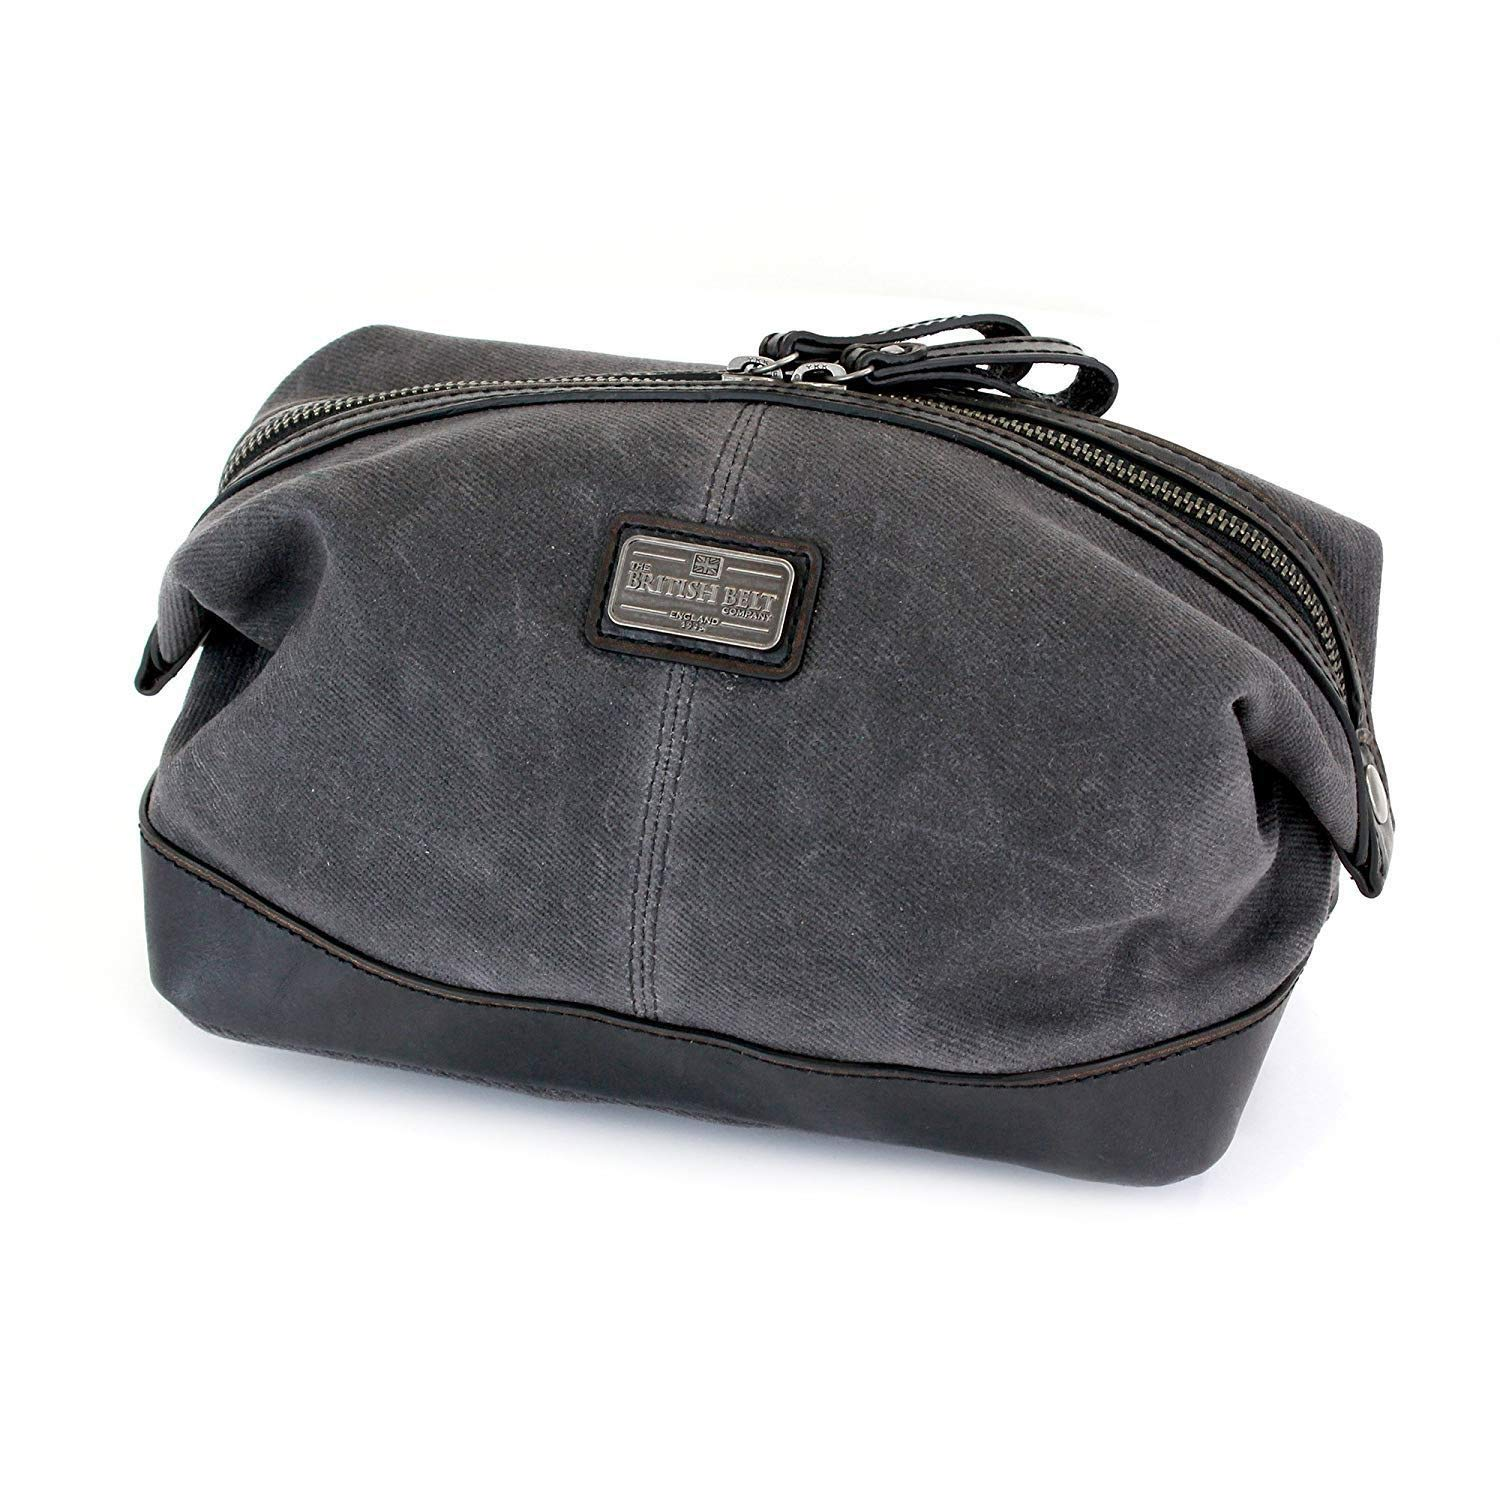 Halley Stevensons Waxed Canvas Toiletry Bag Dopp Kit, Leather Trim, Cotton Check Lining, Internal Zip Pocket, The British Belt Co. Langdale Collection